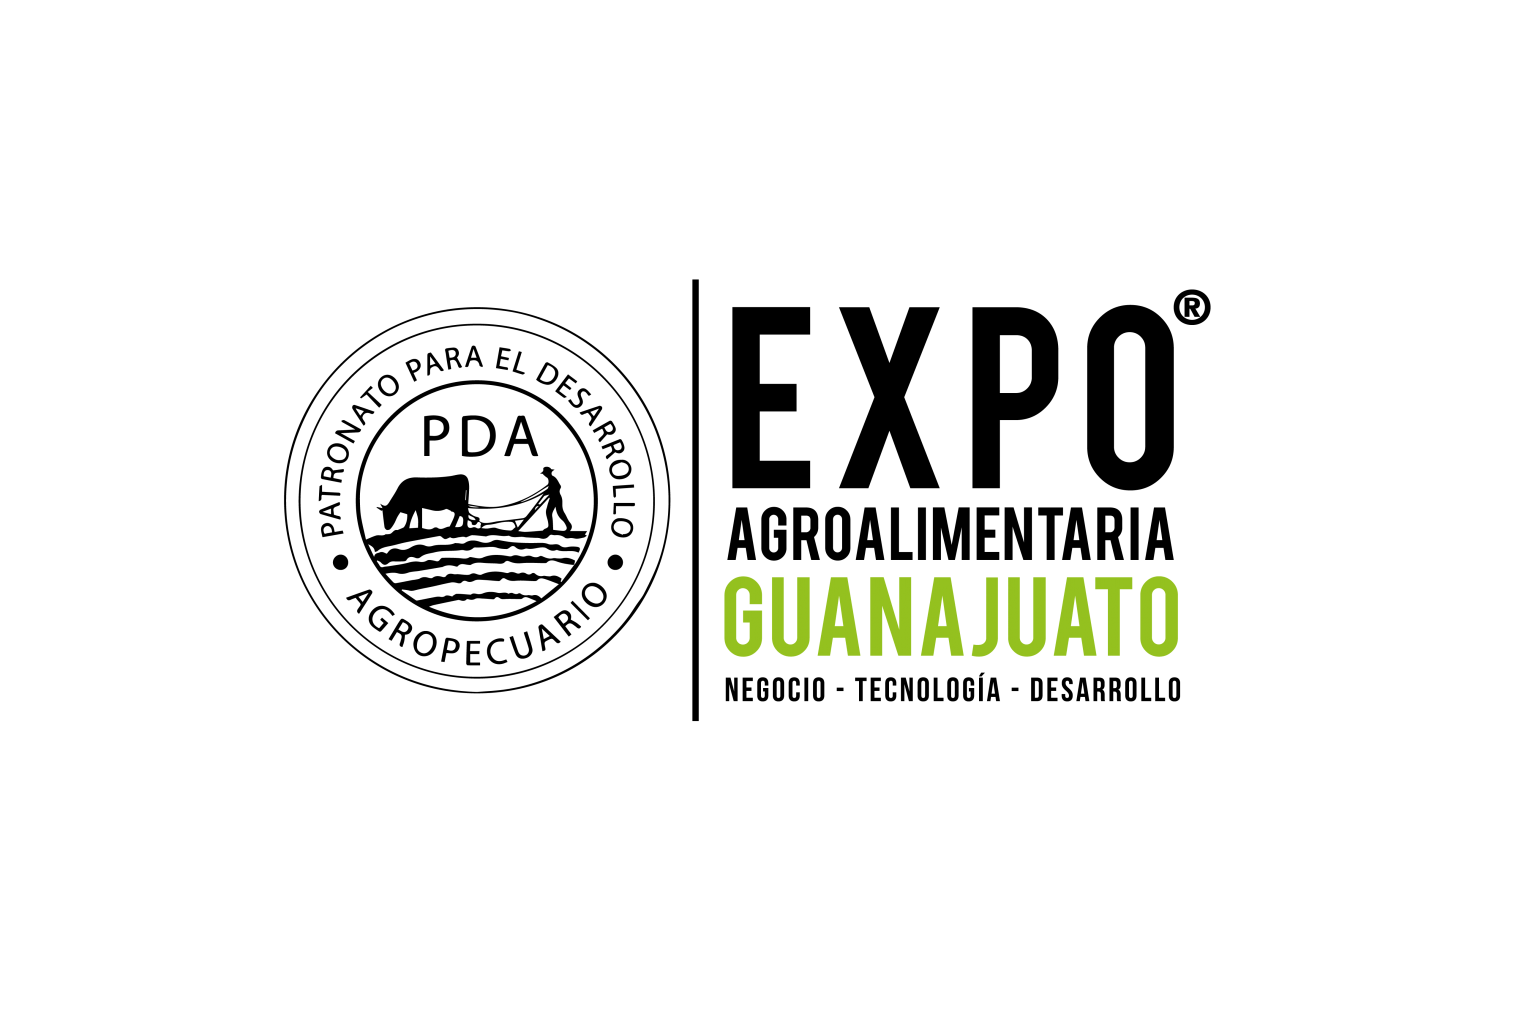 Tradecorp at Expo Agroalimentaria in Mexico from 13th-16th